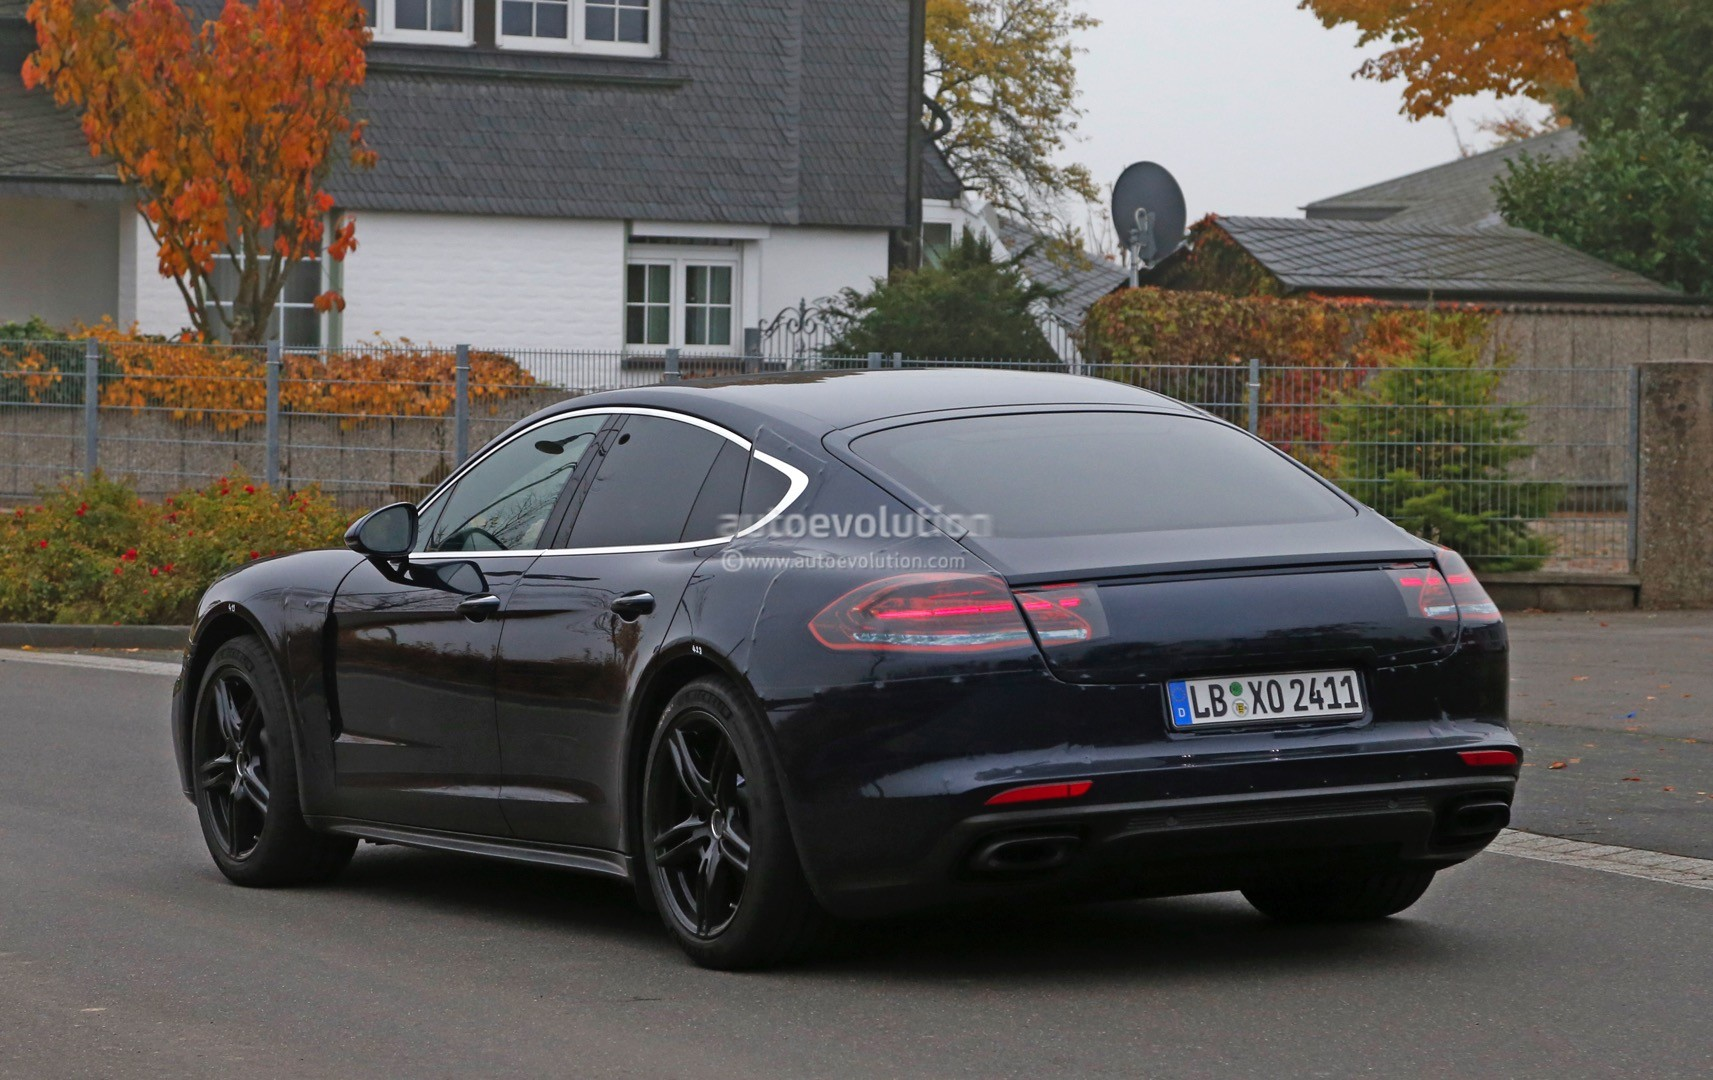 2017 porsche panamera spied close to nurburgring testing. Black Bedroom Furniture Sets. Home Design Ideas